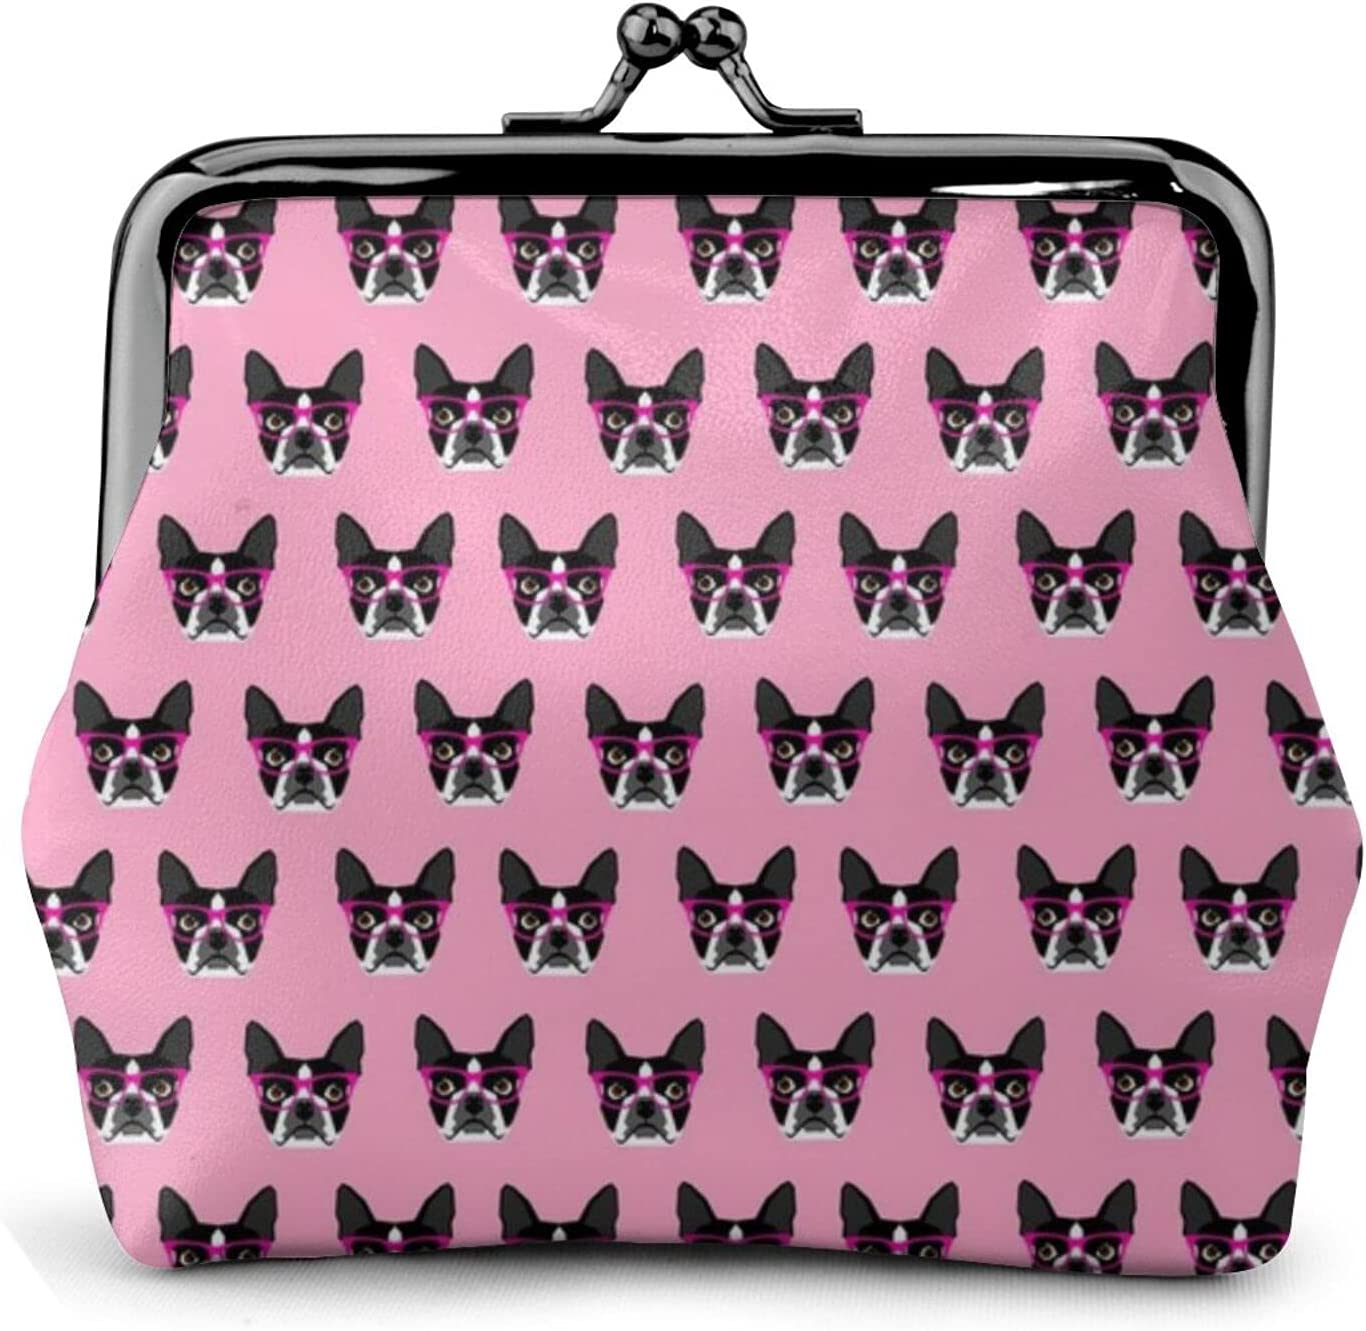 Boston Terrier Glasses 996 Leather Coin Purse Kiss Lock Change Pouch Vintage Clasp Closure Buckle Wallet Small Women Gift